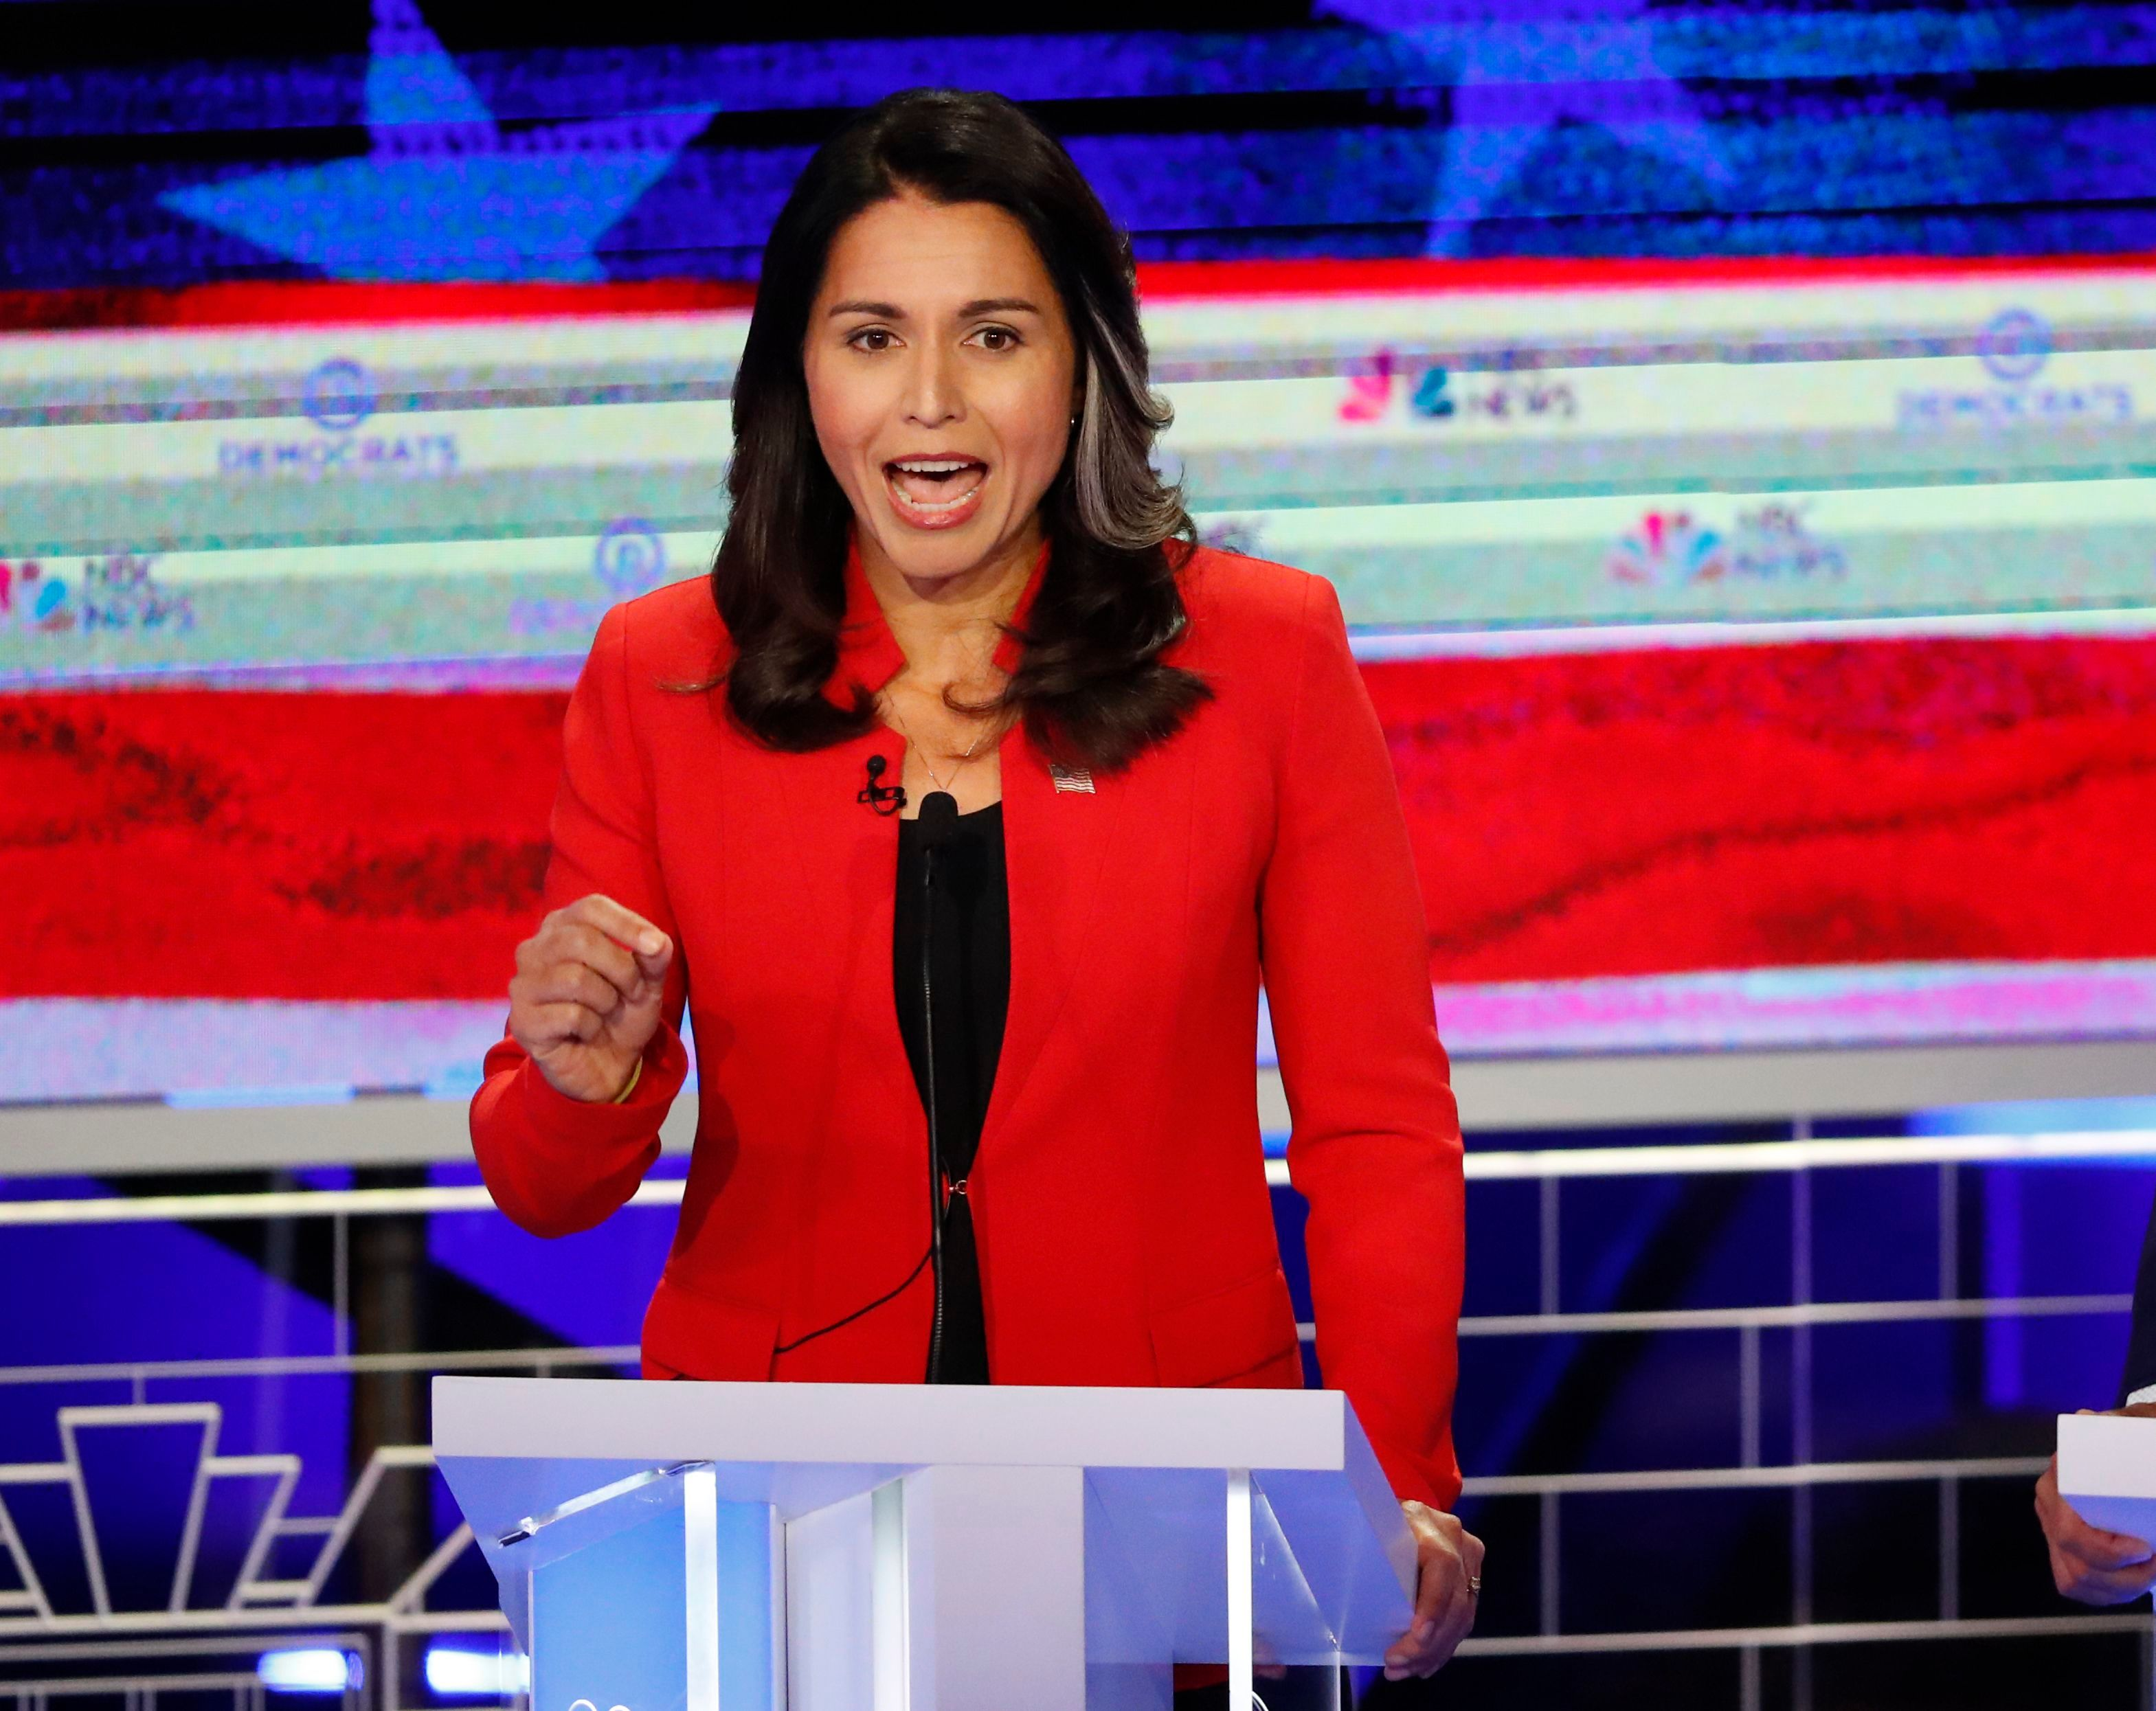 Democratic presidential candidate Rep. Tulsi Gabbard,D-HI., answers a question during the Democratic primary debate hosted by NBC News at the Adrienne Arsht Center for the Performing Art, in MiamiElection 2020 Debate, Miami, USA - 26 Jun 2019